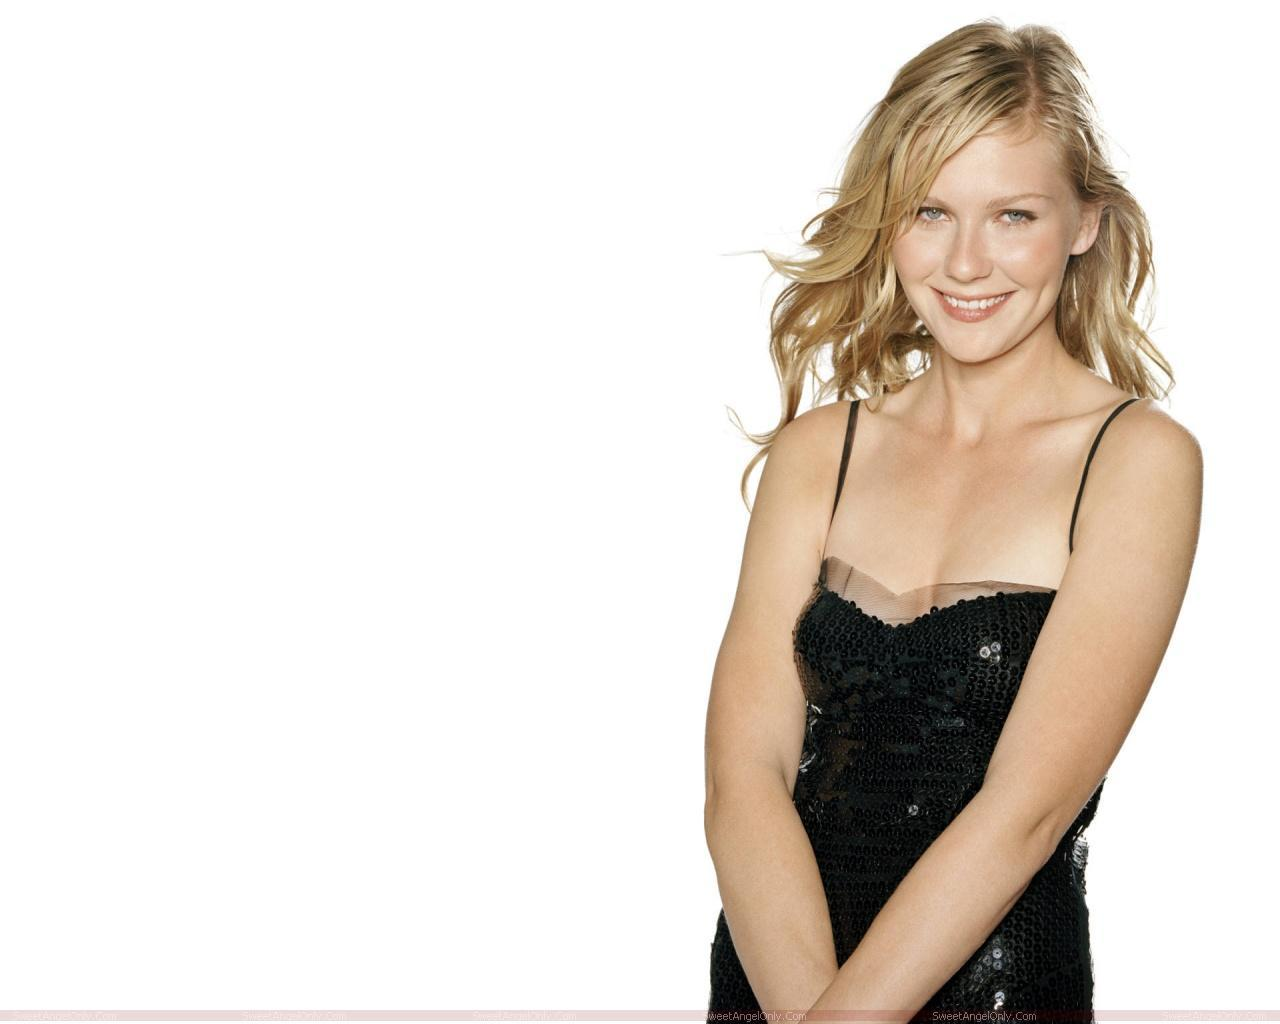 Booty Me Now Kirsten Dunst Hot Wallpapers